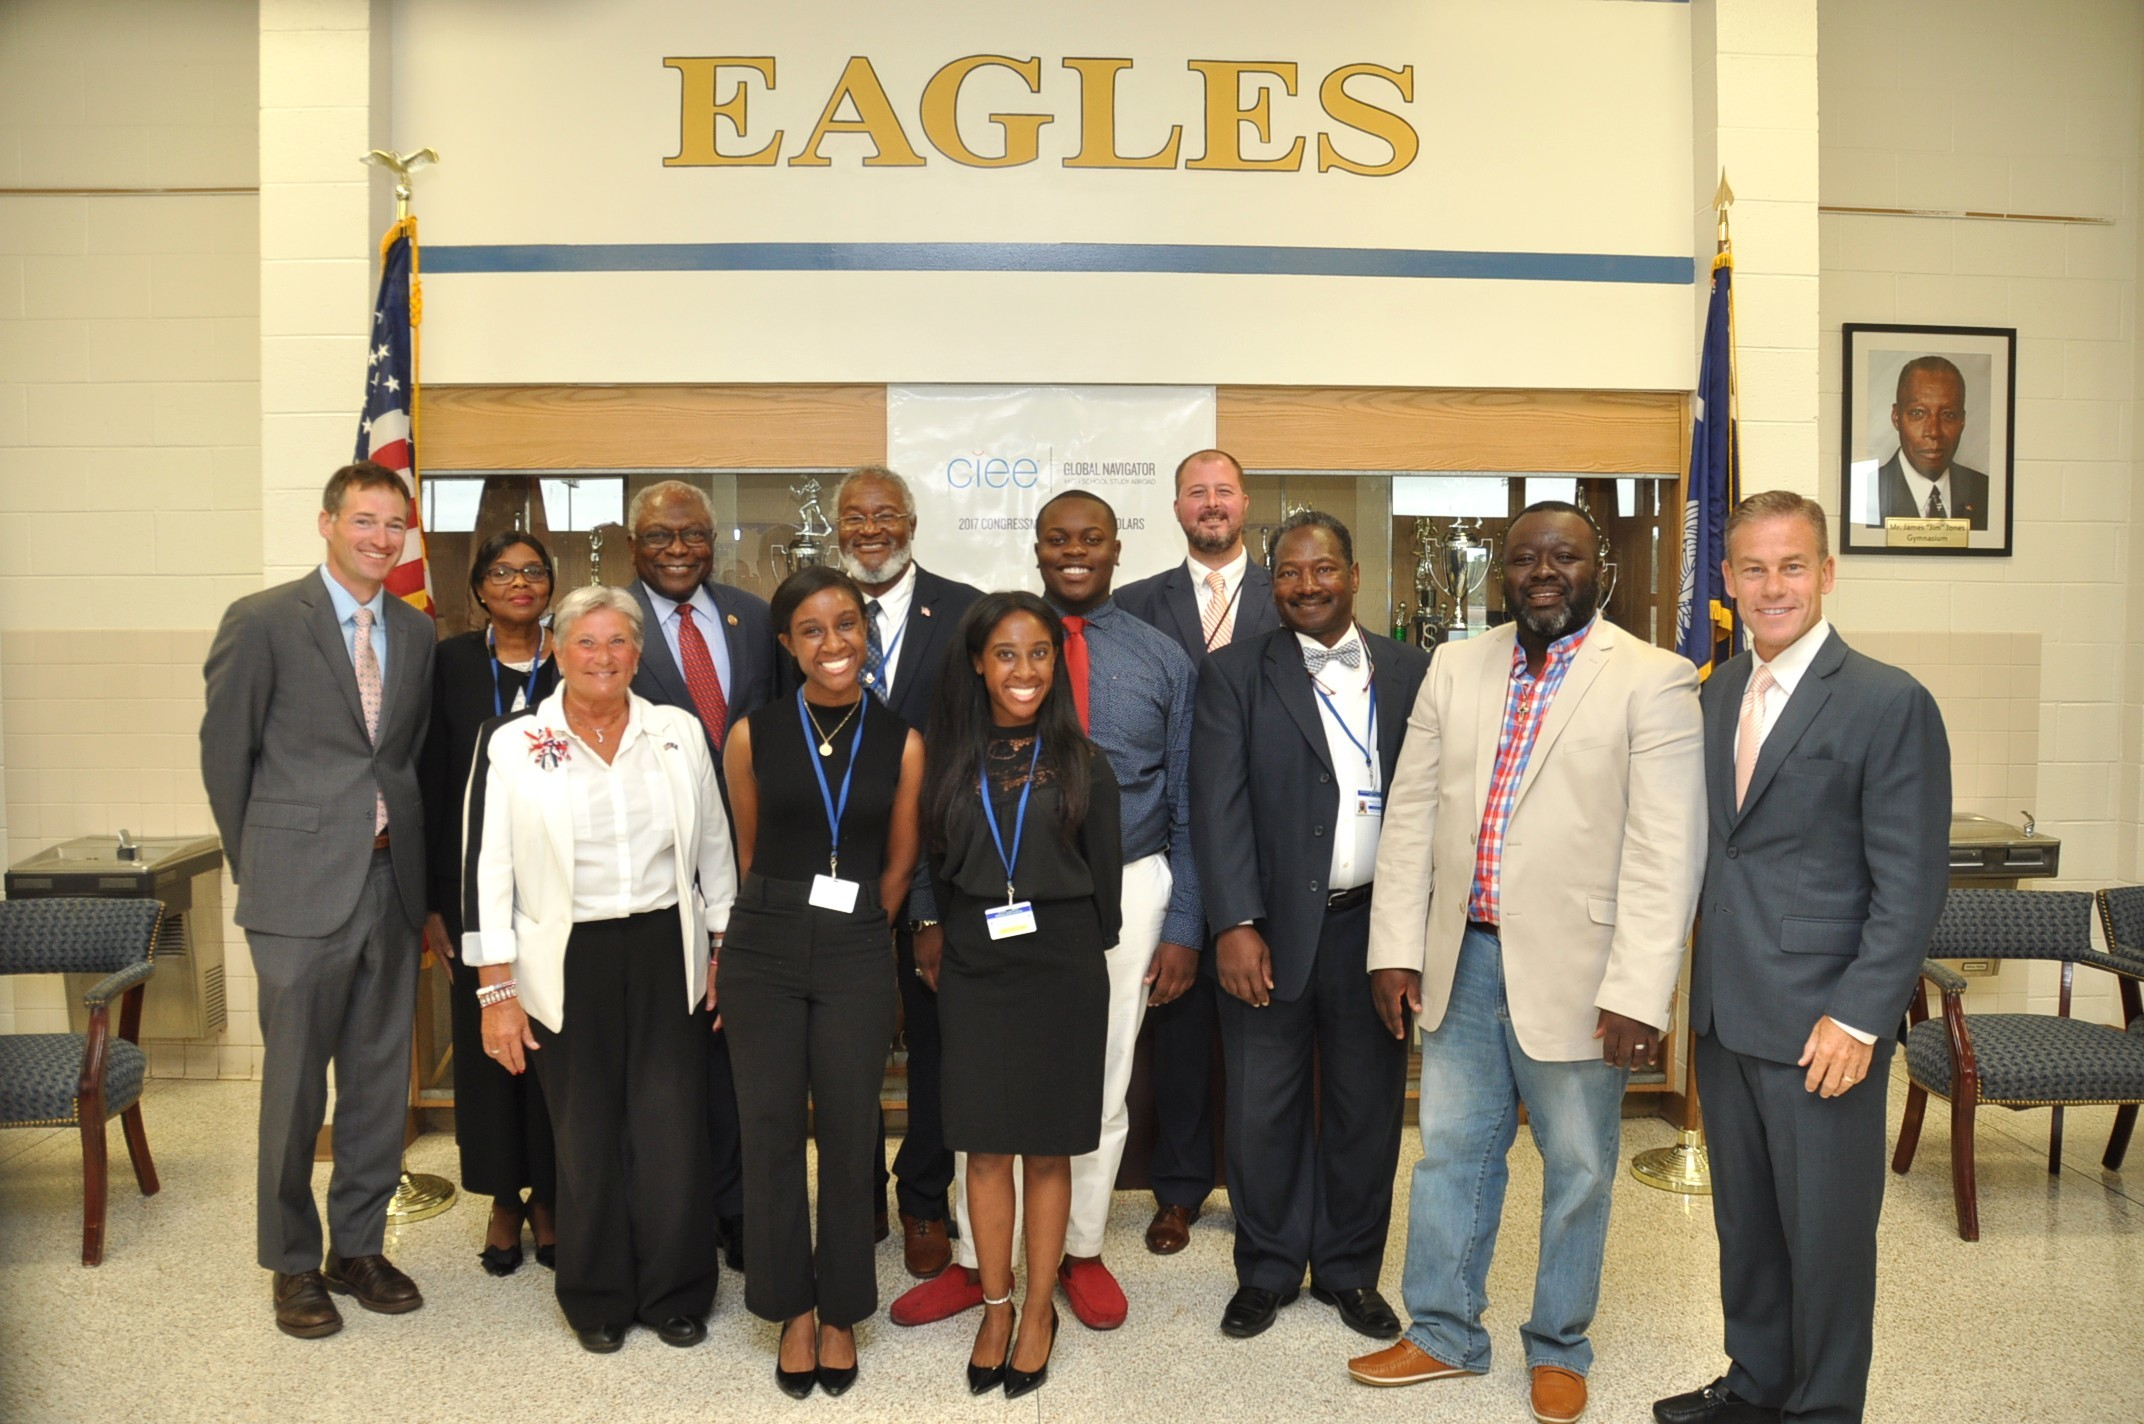 U.S. Rep. James Clyburn joined officials from Clarendon County School District 1 and the Council on International Educational Exchange in congratulating four Scott's Branch High School students who recently studied in France and the Caribbean on scholarships awarded by CIEE.